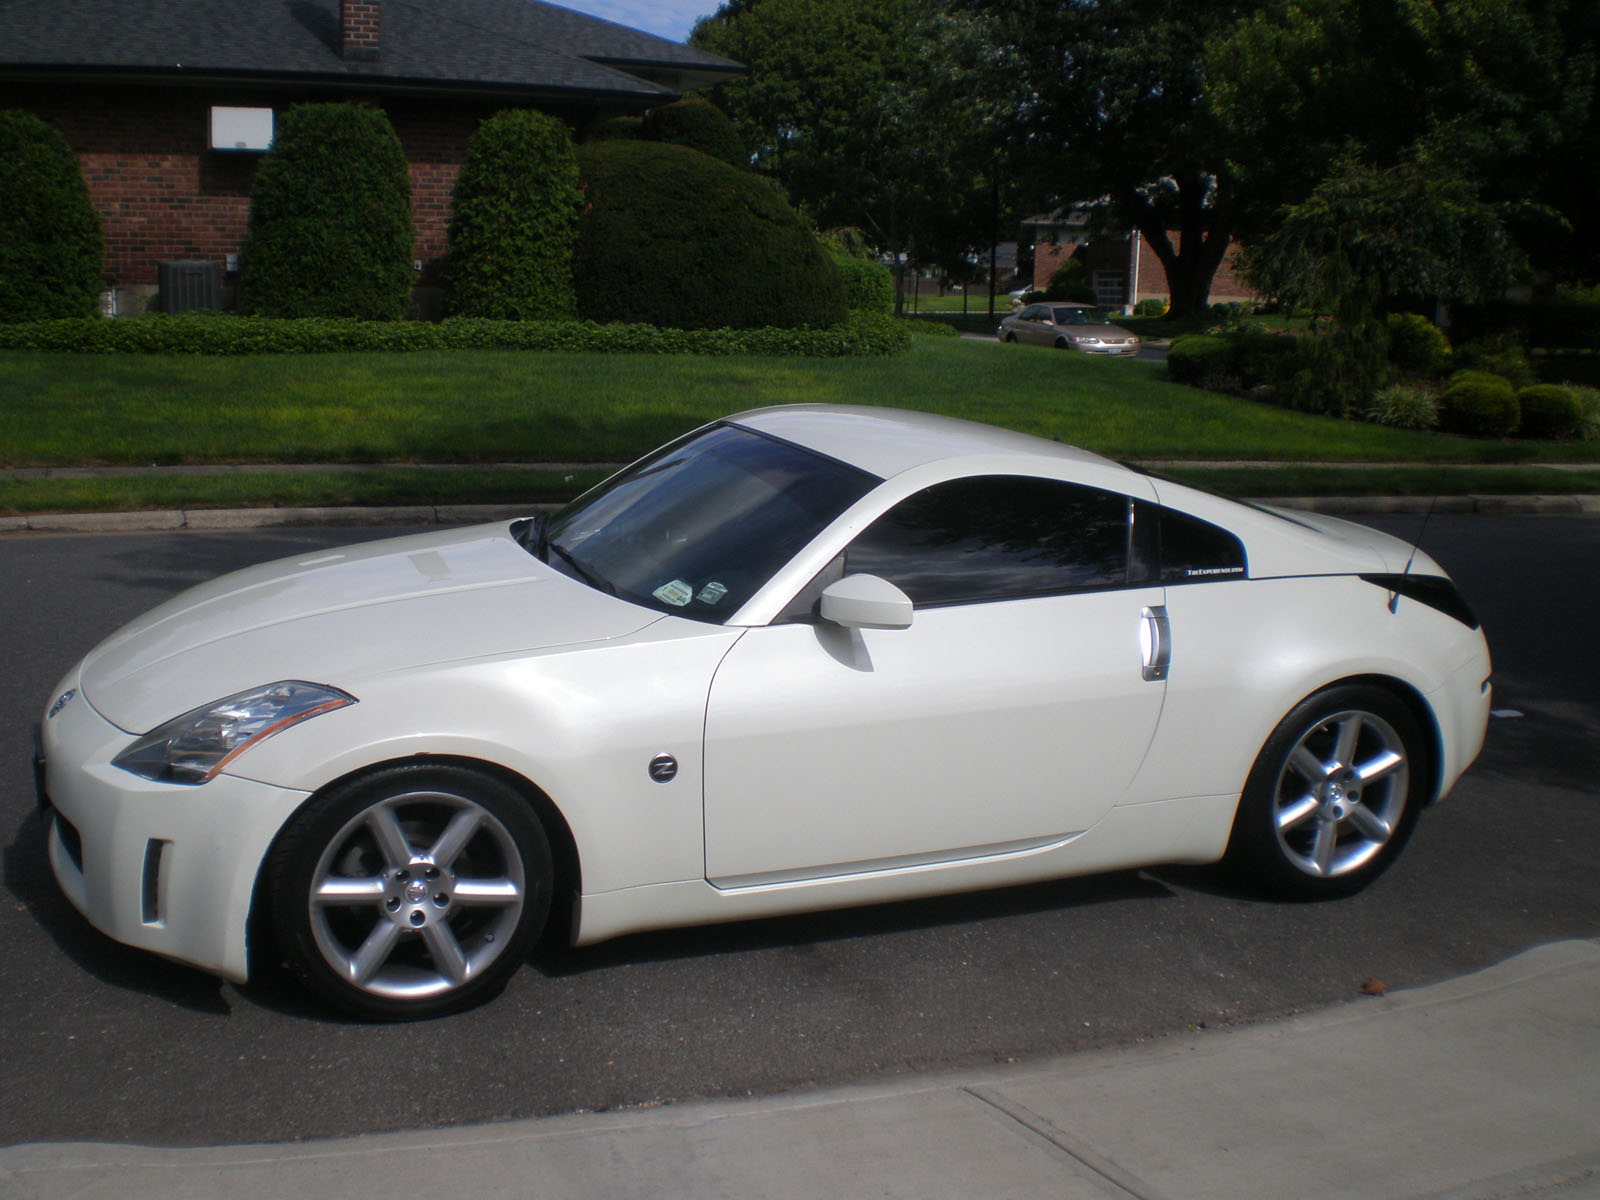 2005 Nissan 2005 350z White Mint Low Miles Clean Carfax